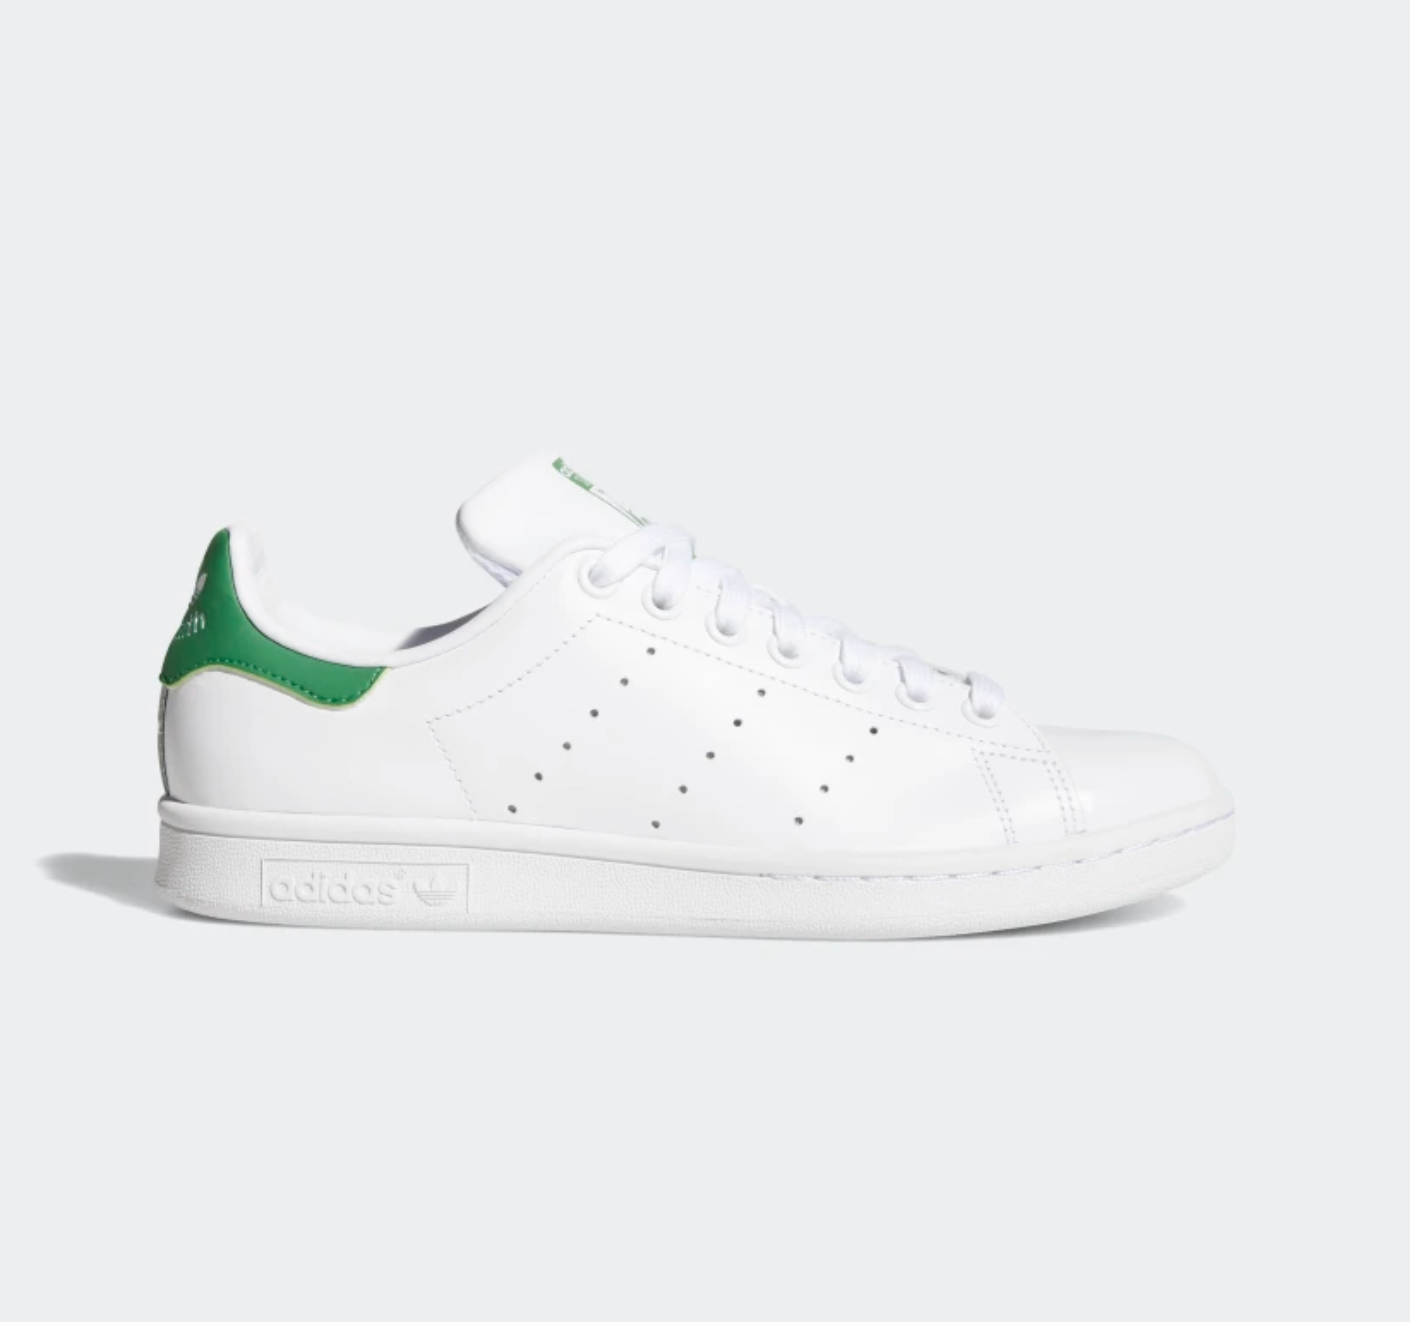 Adidas Stan Smith Shoes $80